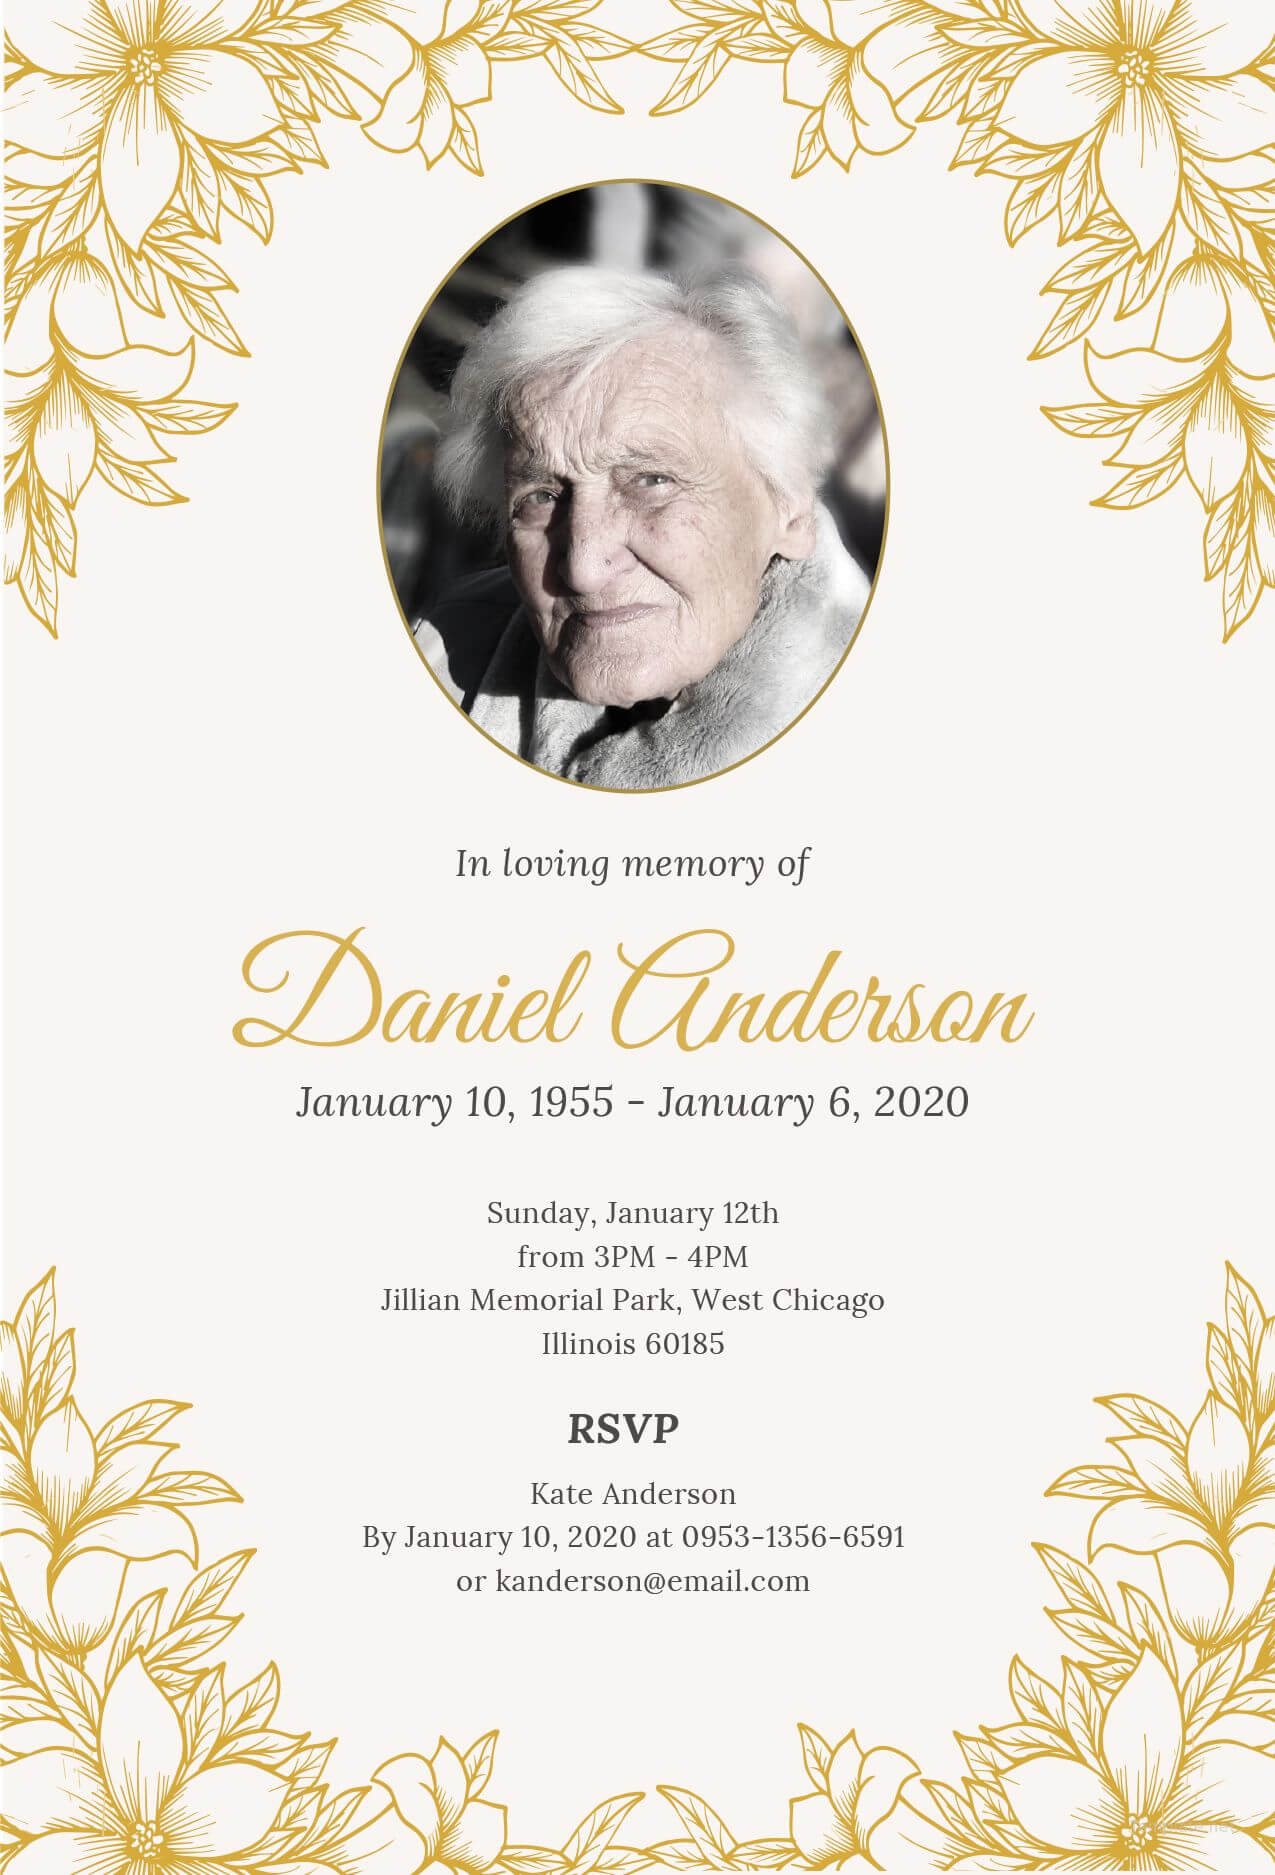 Free Funeral Ceremony Invitation | Funeral Invitation, Free Throughout Funeral Invitation Card Template